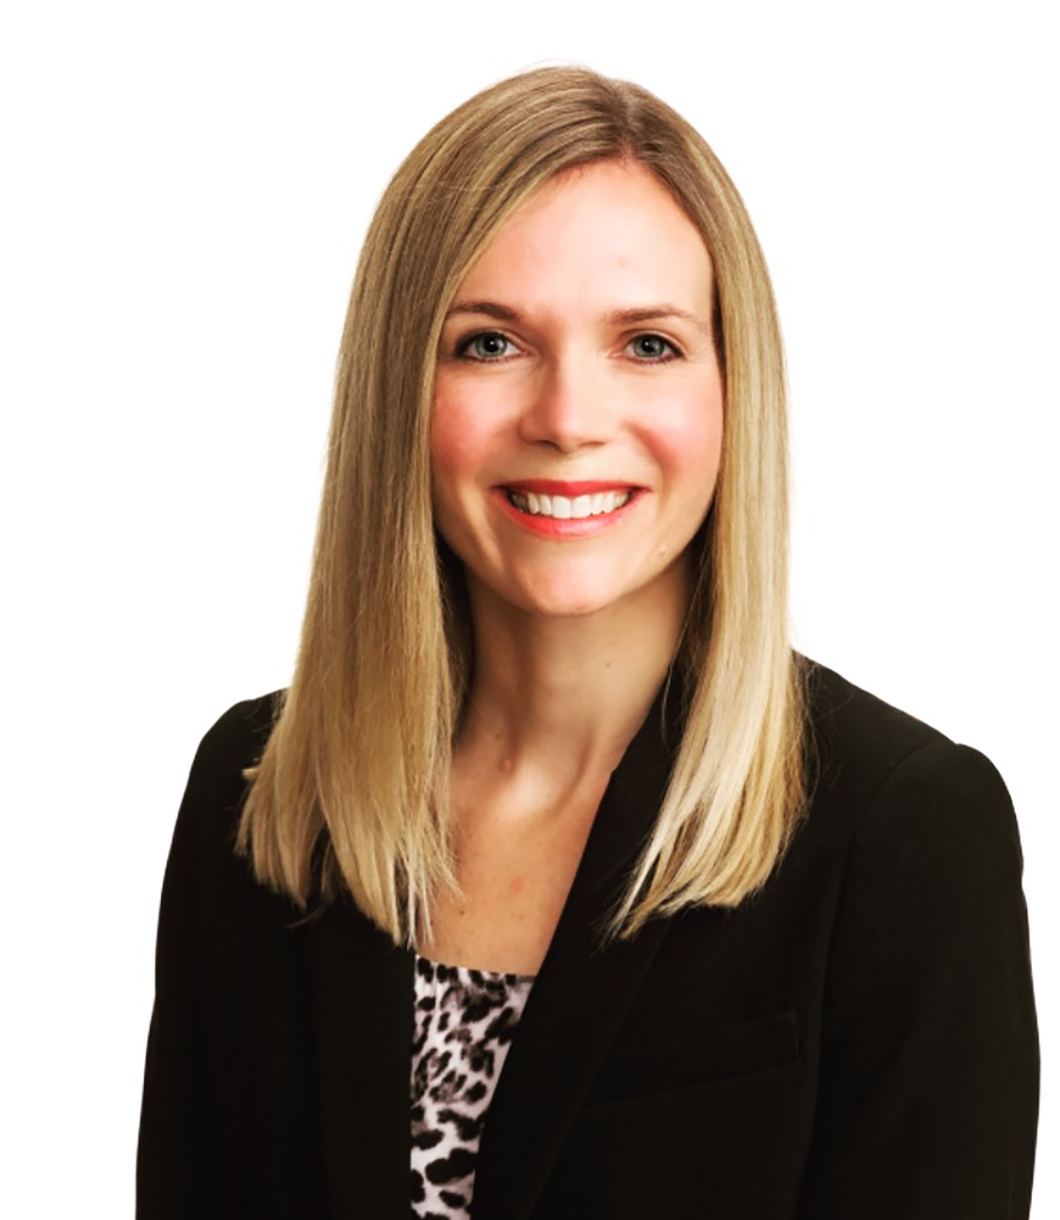 Christy Naponic - Agent at The Reyna Group